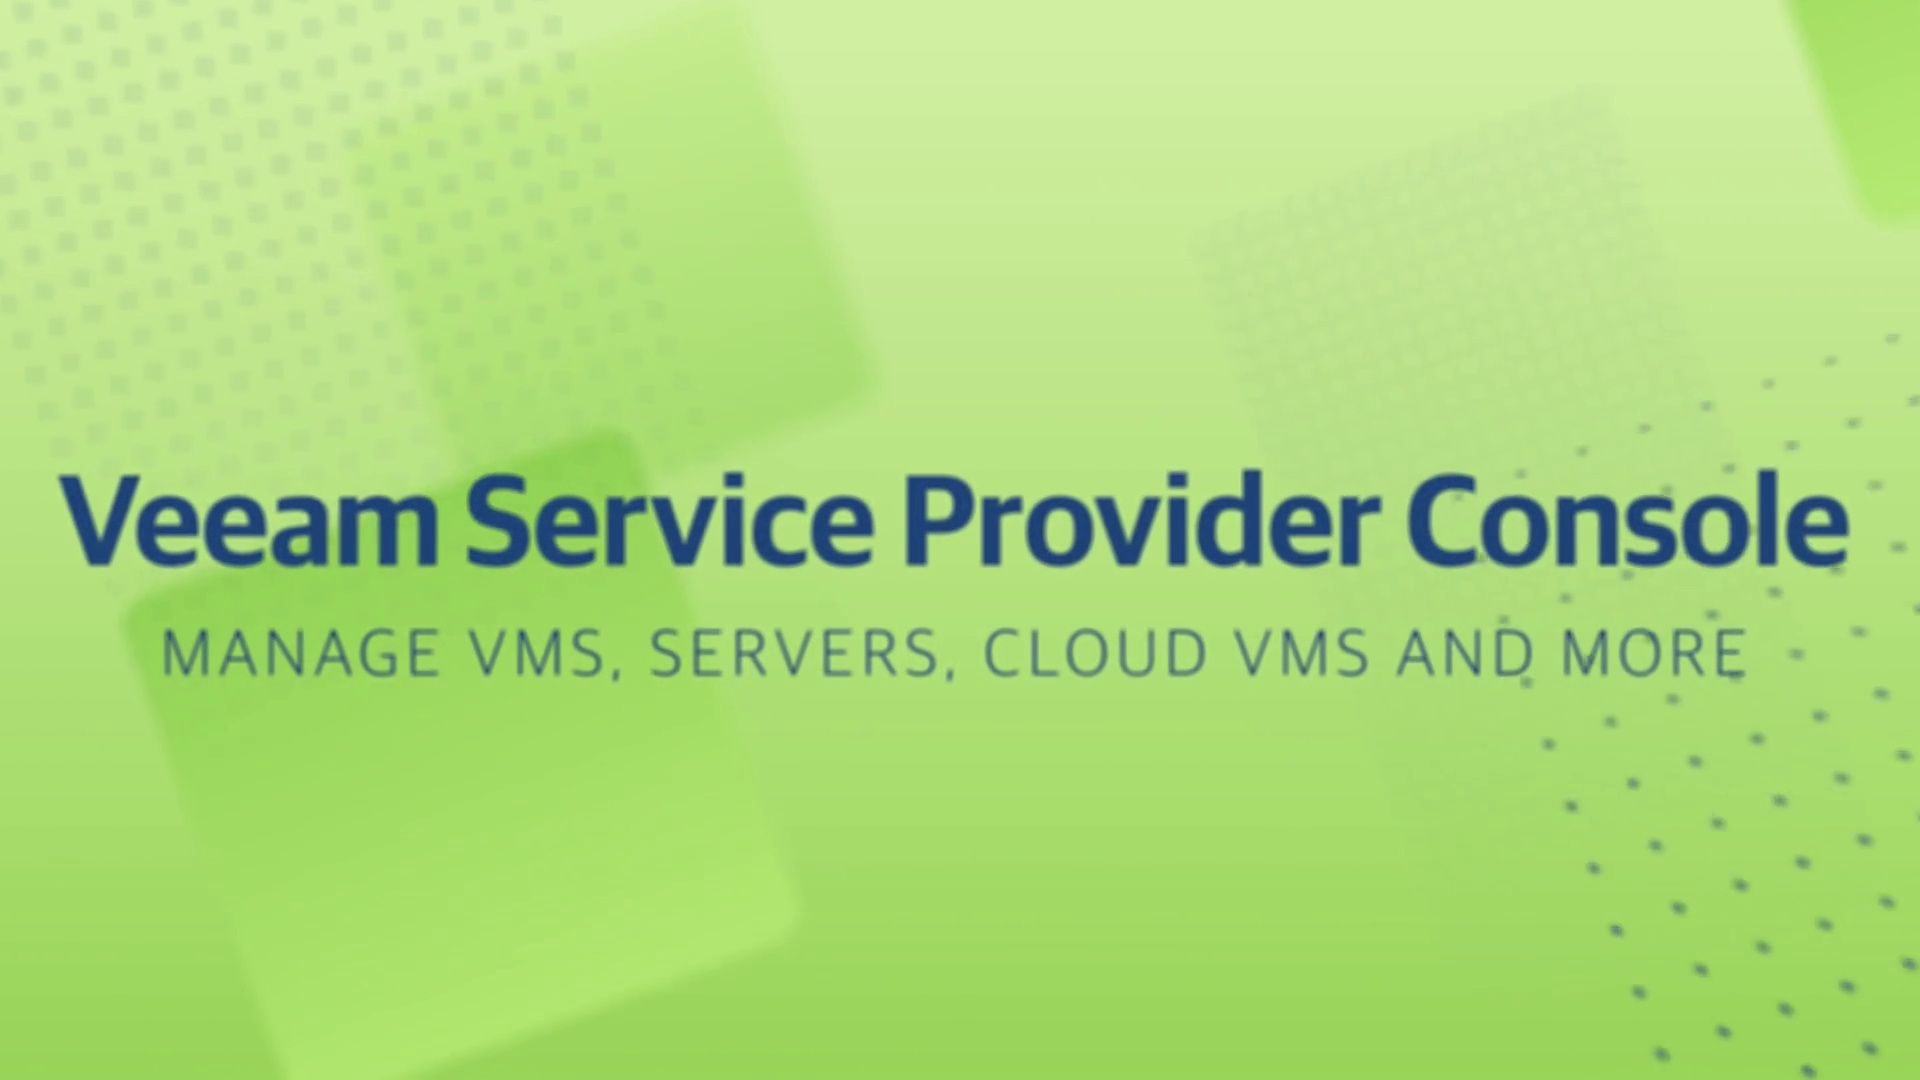 Product launch v11 - VSPC - Manage VMS, Servers, Cloud VMS and More